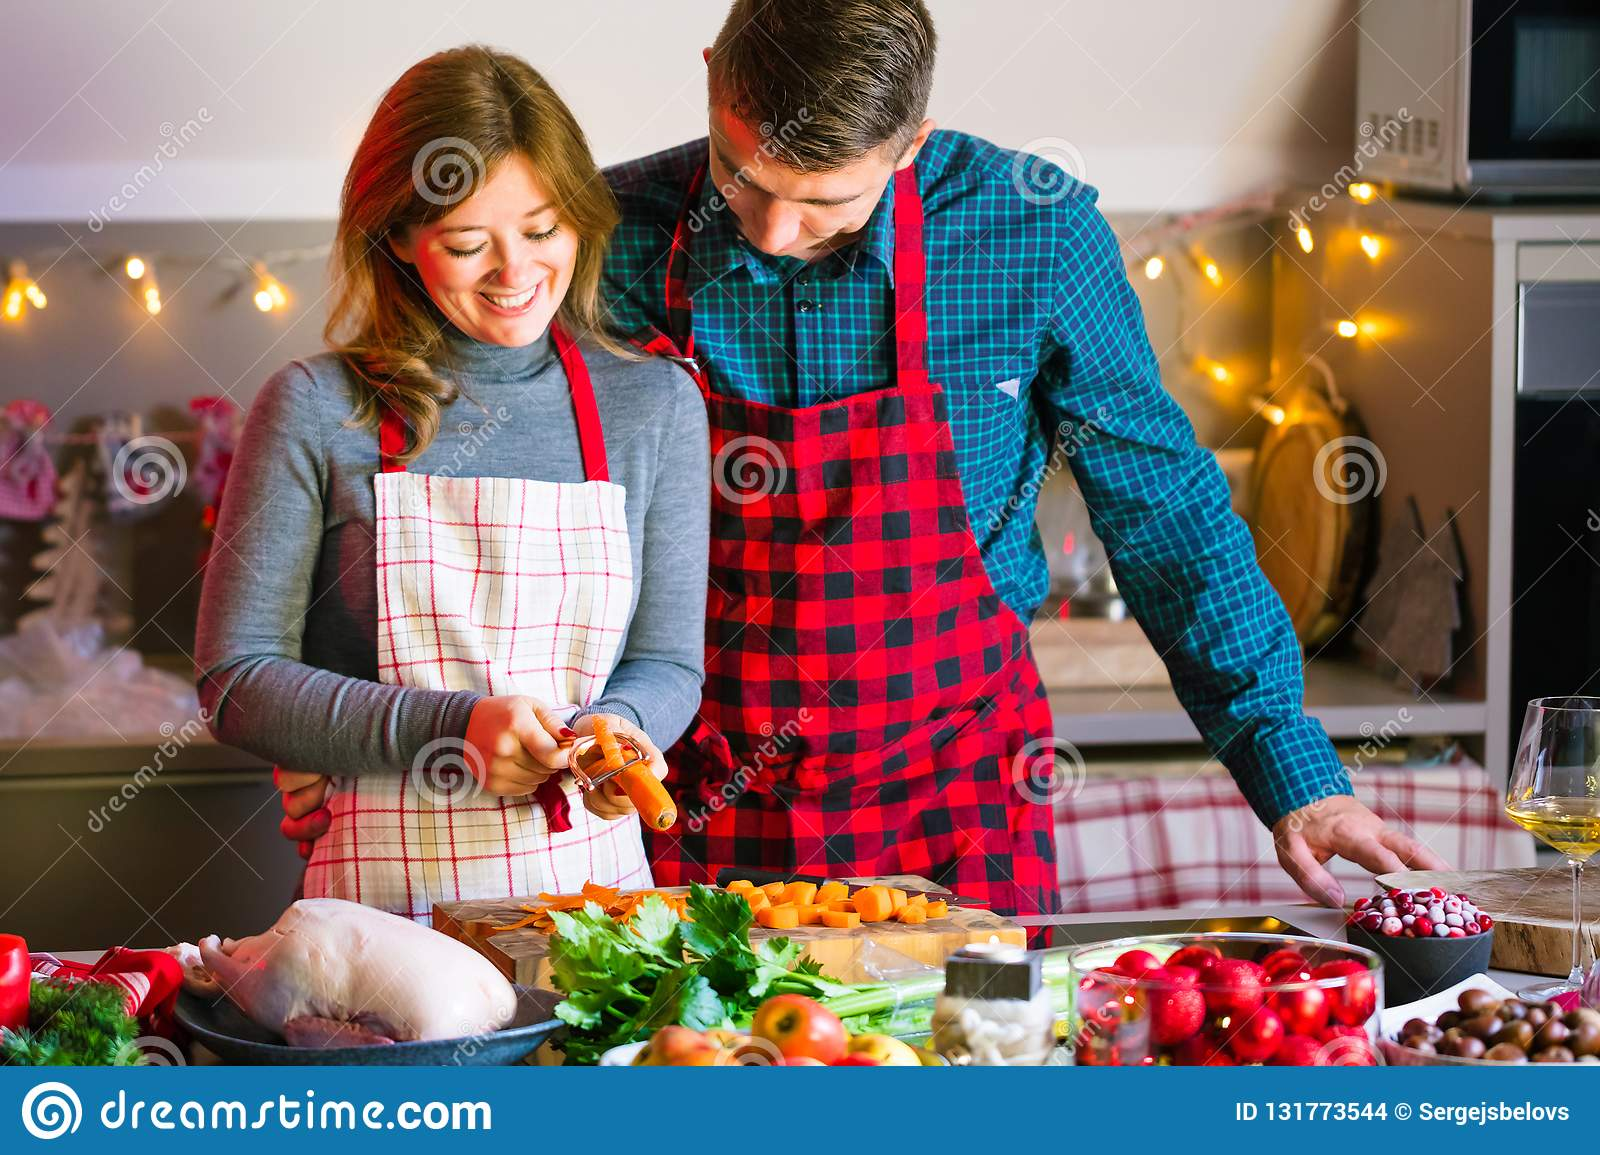 Couple celebrating Christmas in the kitchen cooking christmas duck or Goose